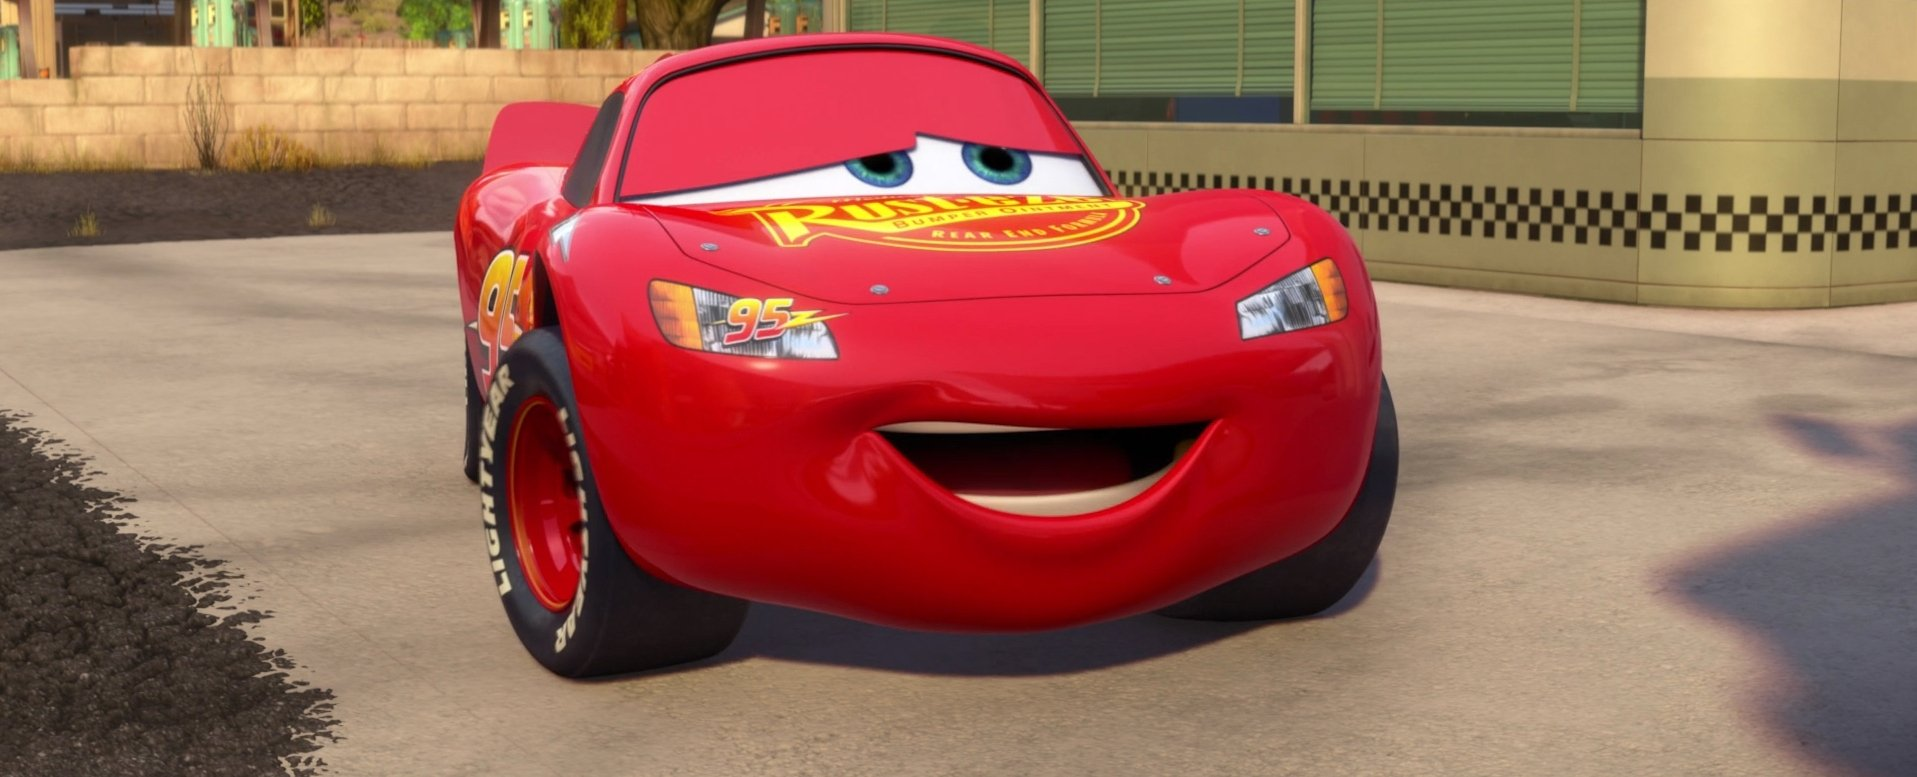 Lightning Mcqueen Wallpaper Pictures to like or share on Facebook 1917x777